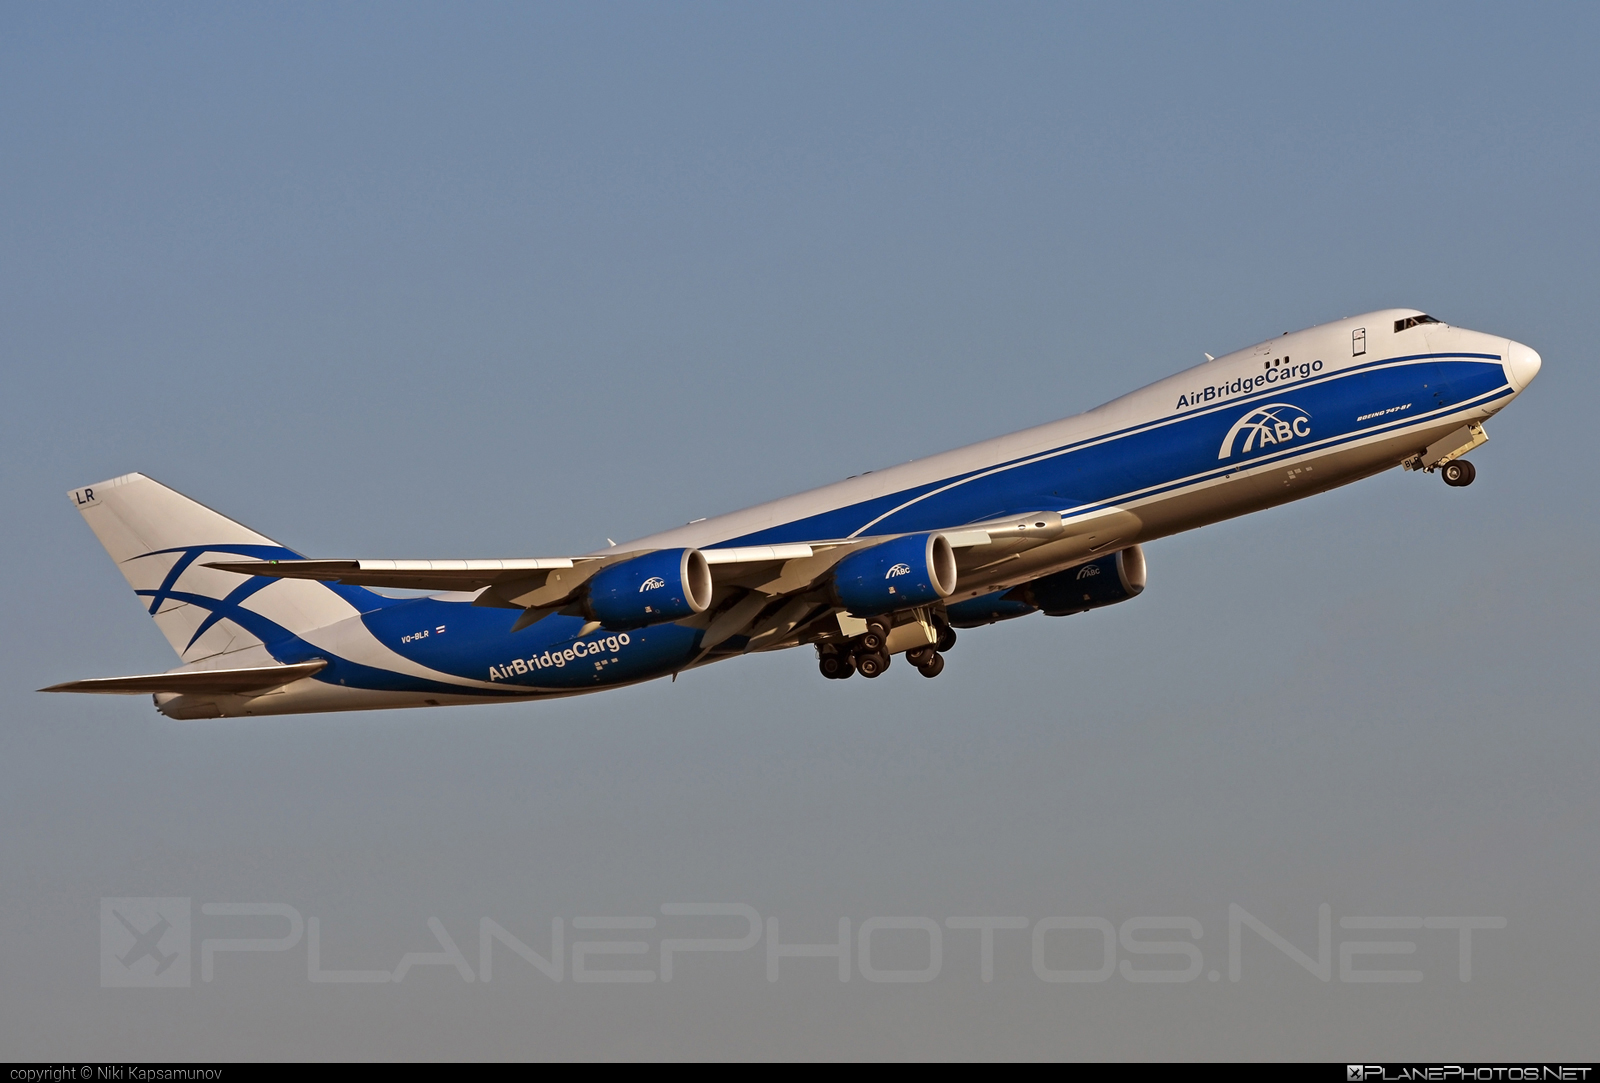 Boeing 747-8F - VQ-BLR operated by AirBridgeCargo #airbridgecargo #b747 #b747f #b747freighter #boeing #boeing747 #jumbo